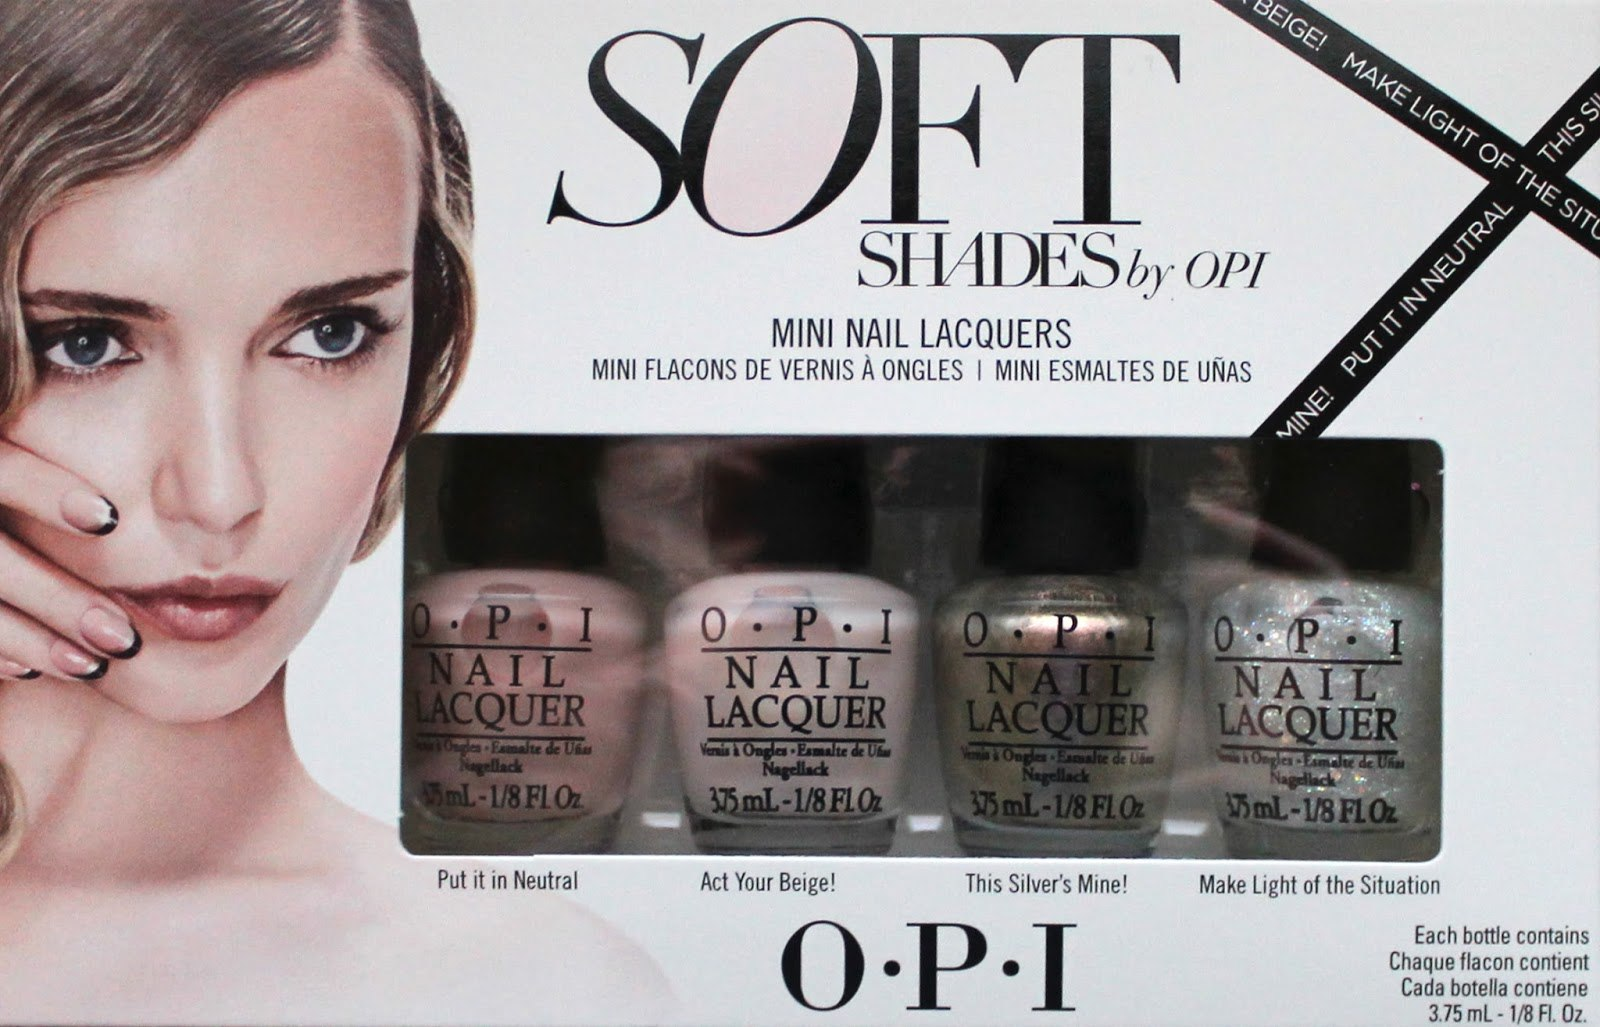 OPI Nail Polish Mini Kit - Soft Shades | Turn Beautiful